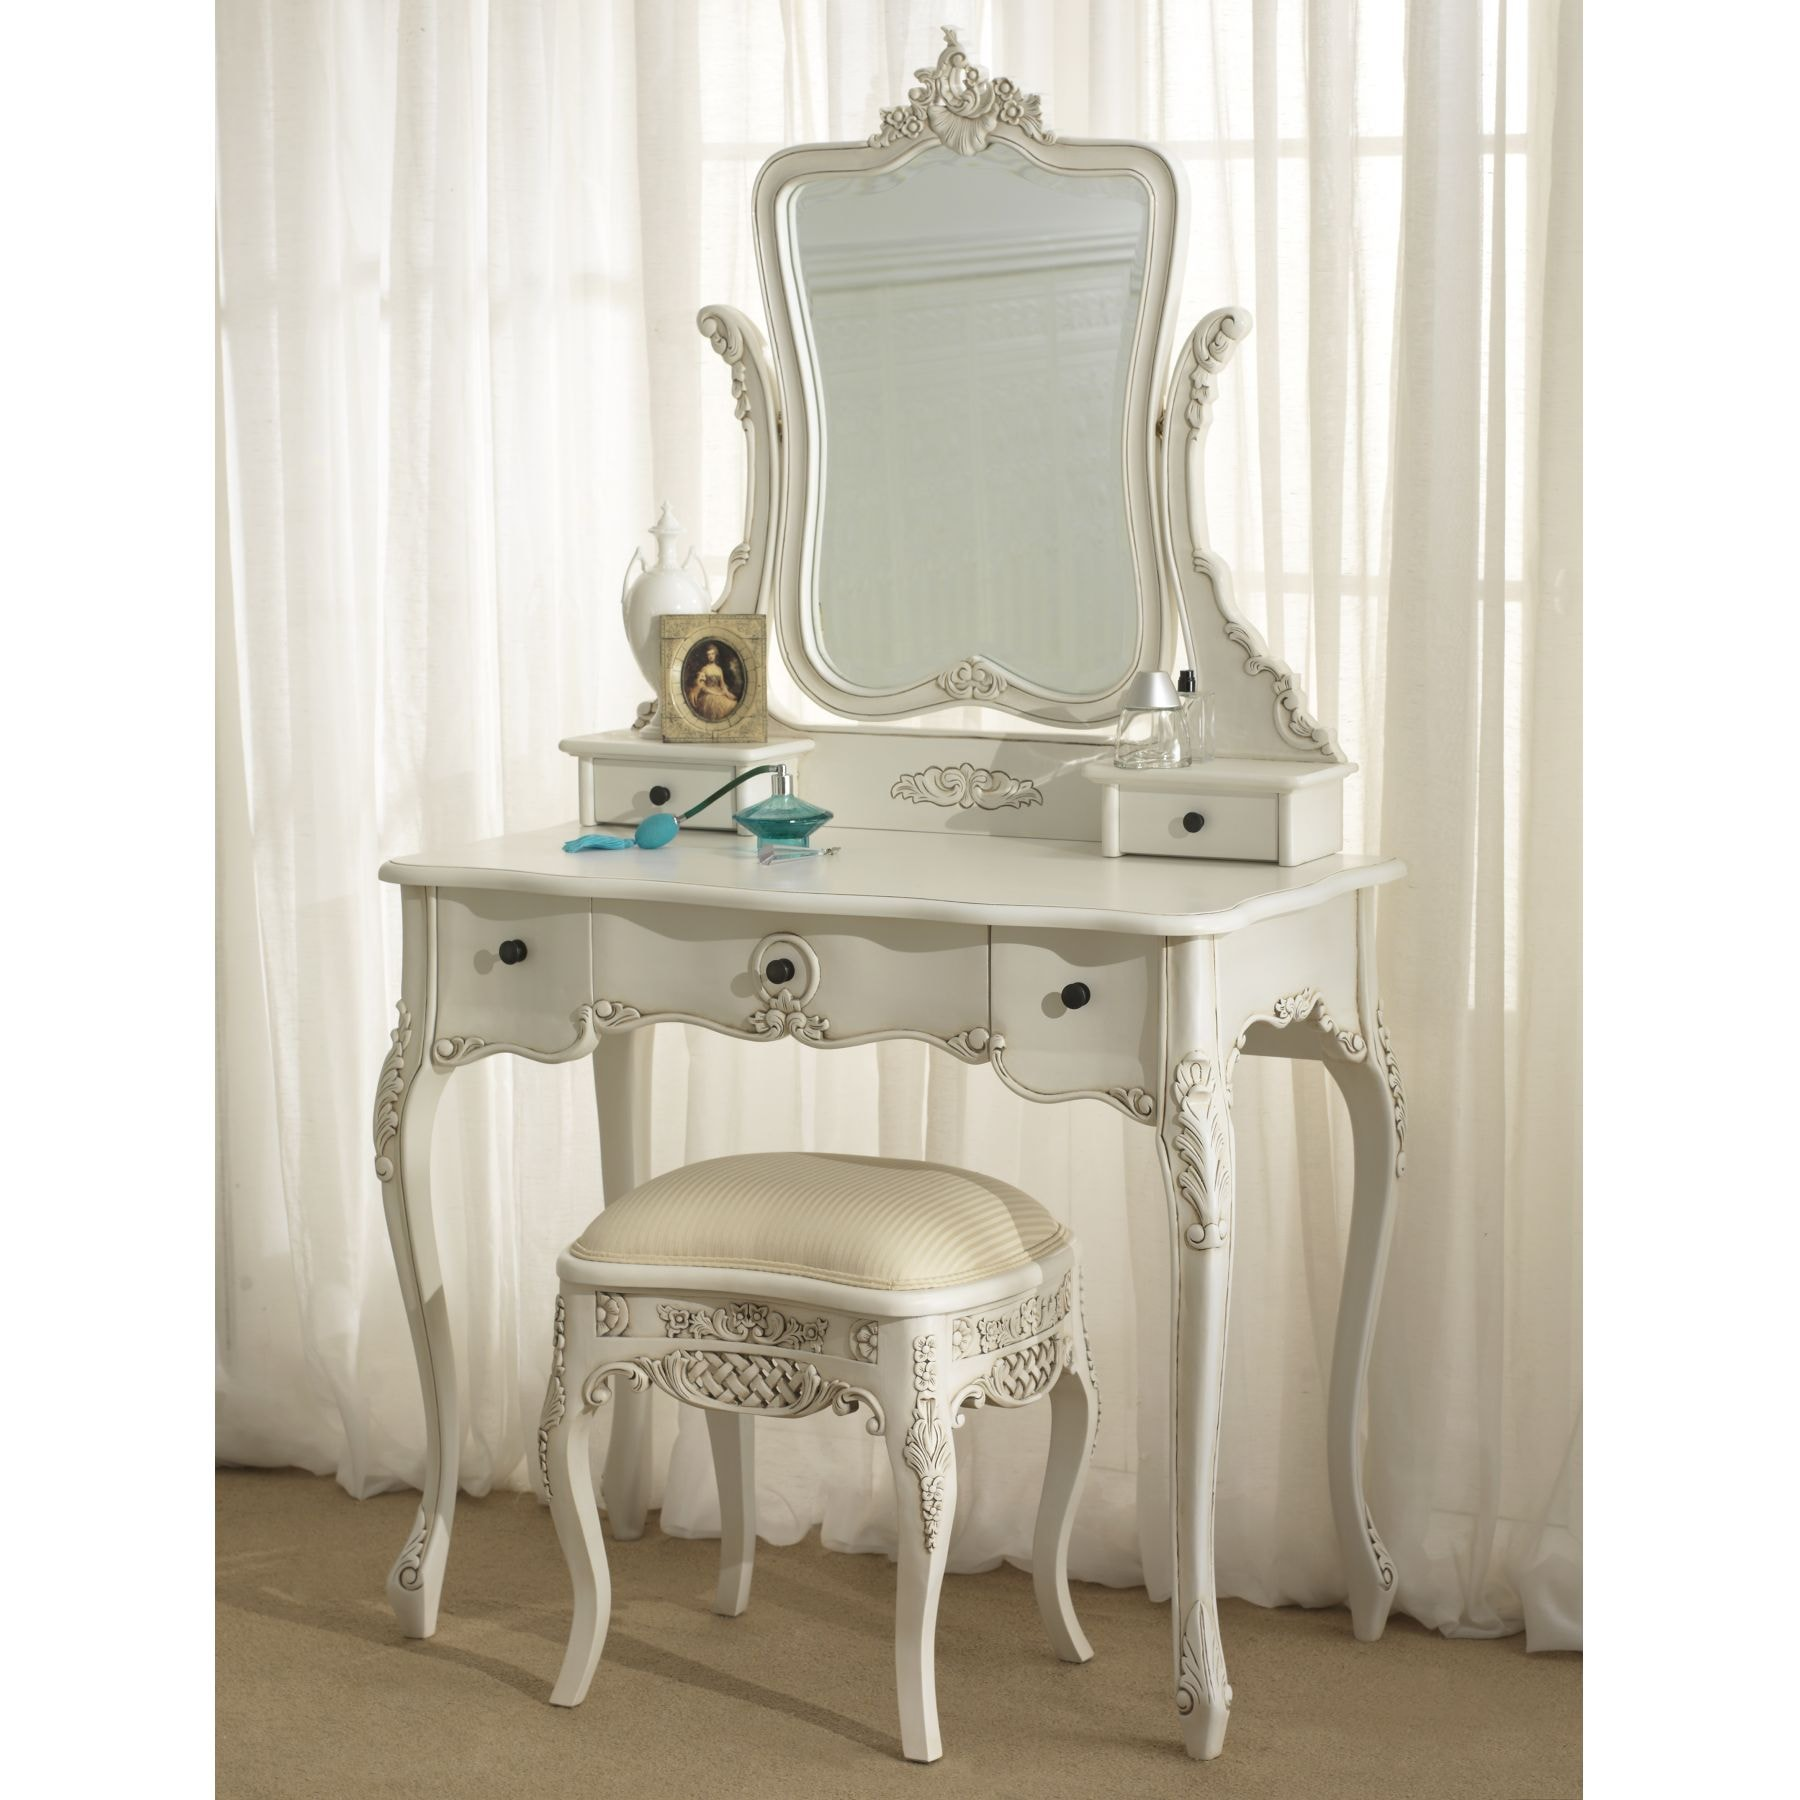 La rochelle antique french dressing table set for White dressing table for sale